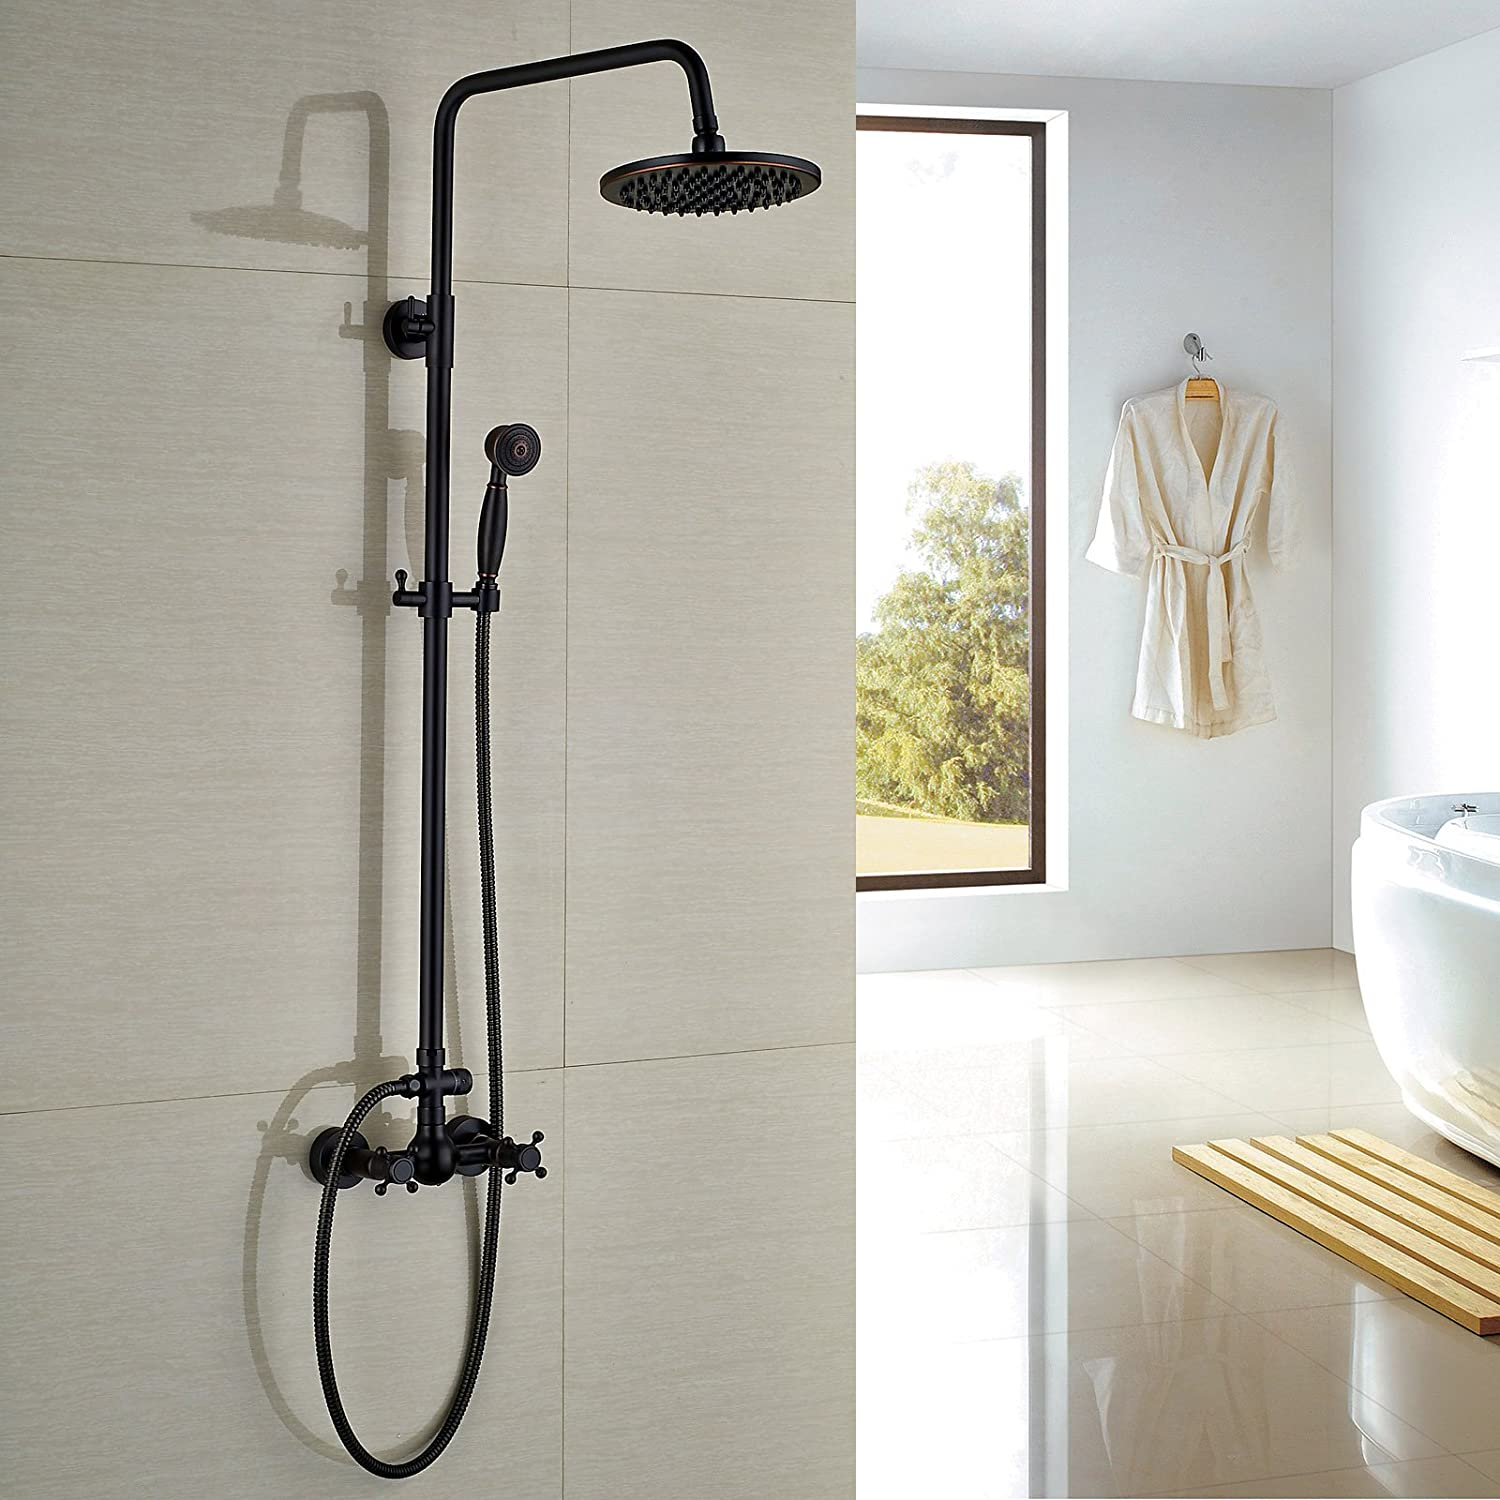 Rozin Bathroom Shower Faucet Set 8 Rain Shower Head Hand Spray